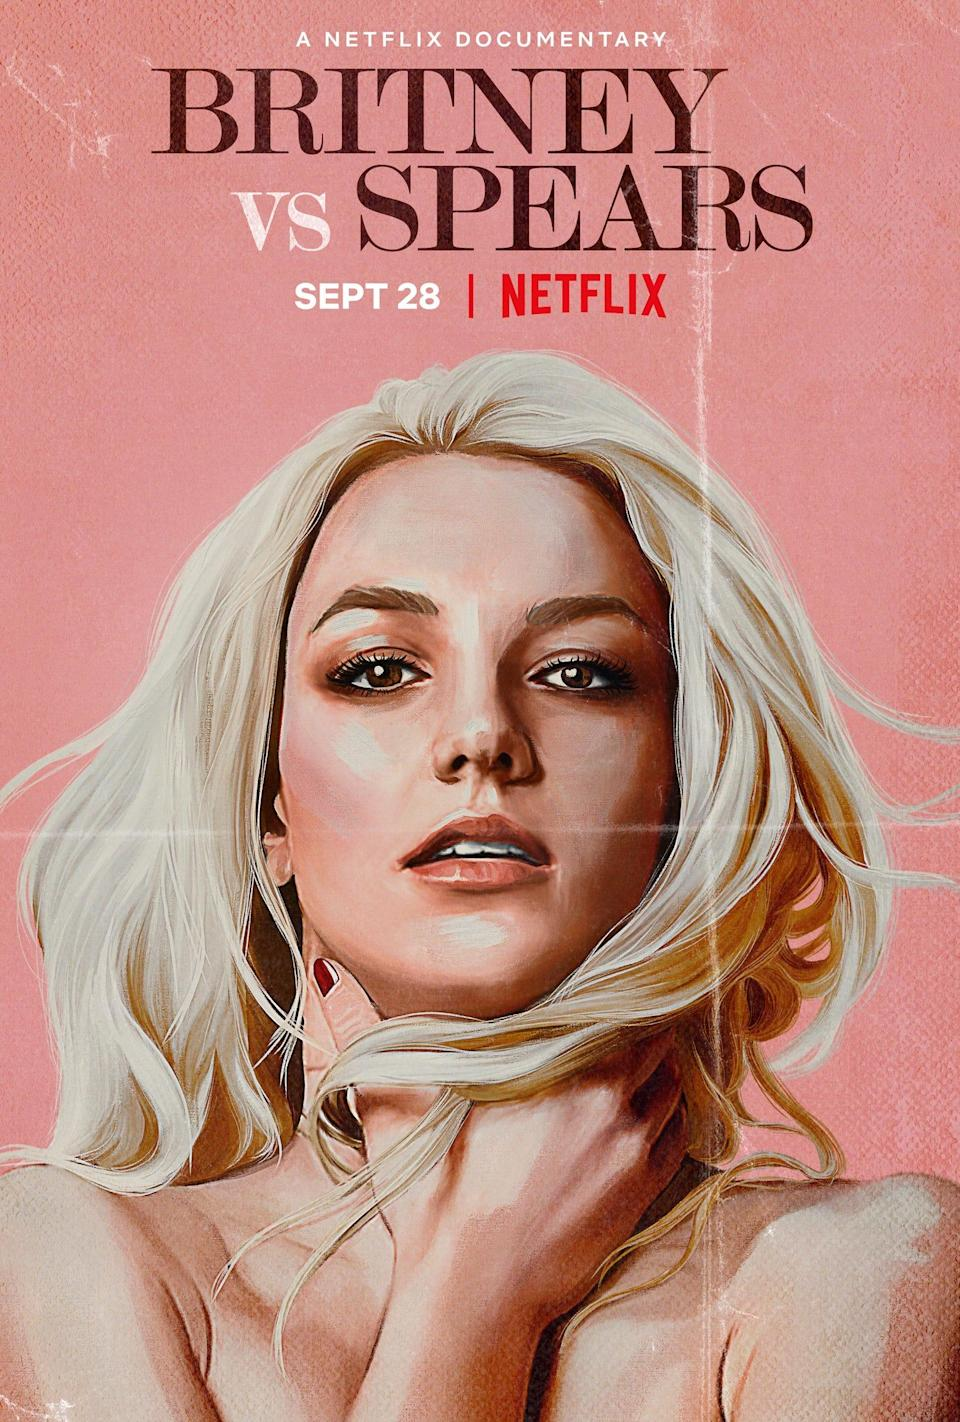 """Netflix's """"Britney vs. Spears"""" is expected to premiere Sept. 28."""